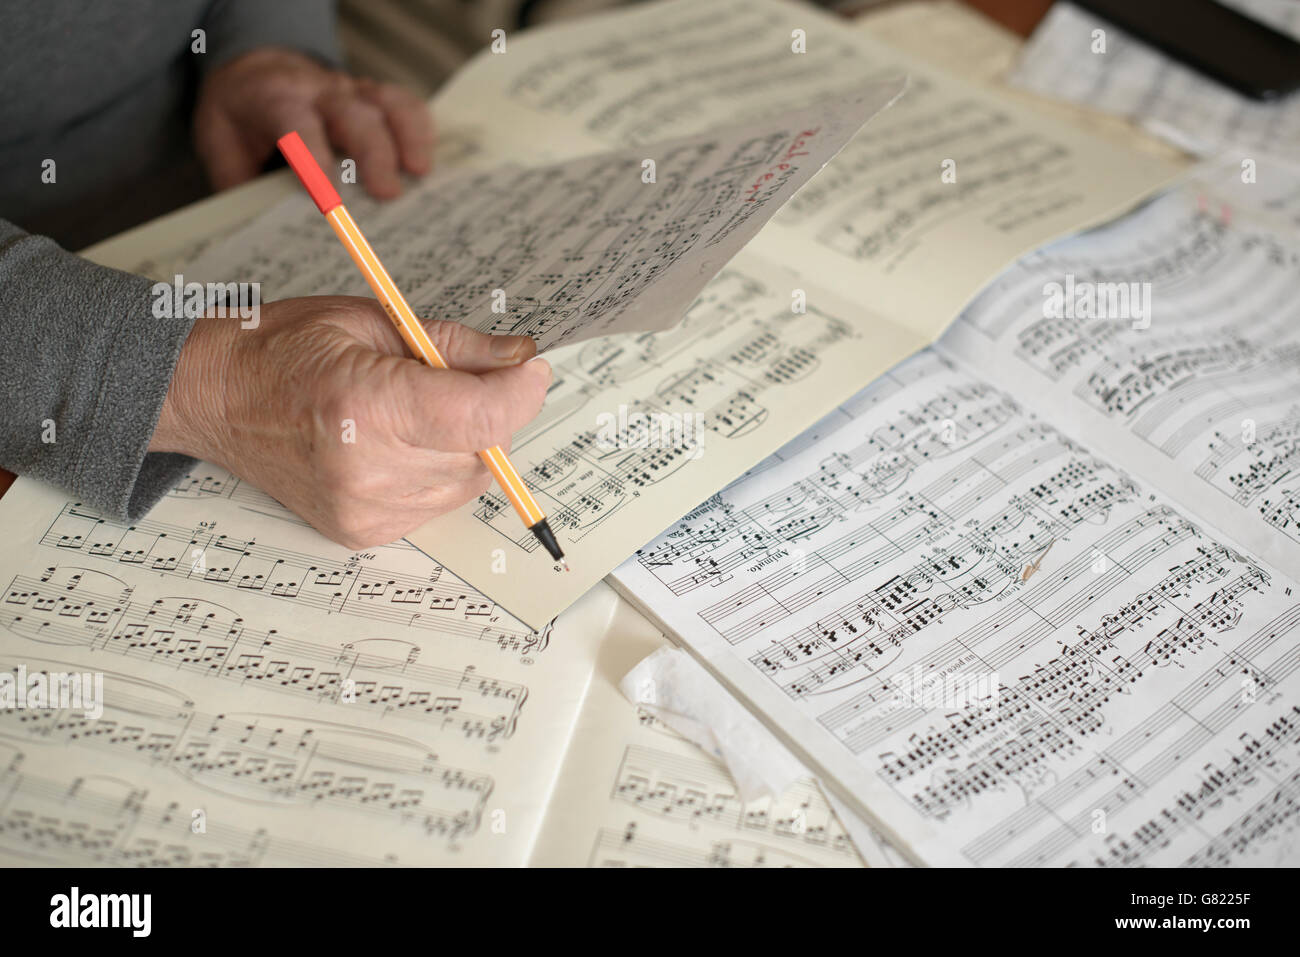 Musician reading and editing  music scores-close-up - Stock Image